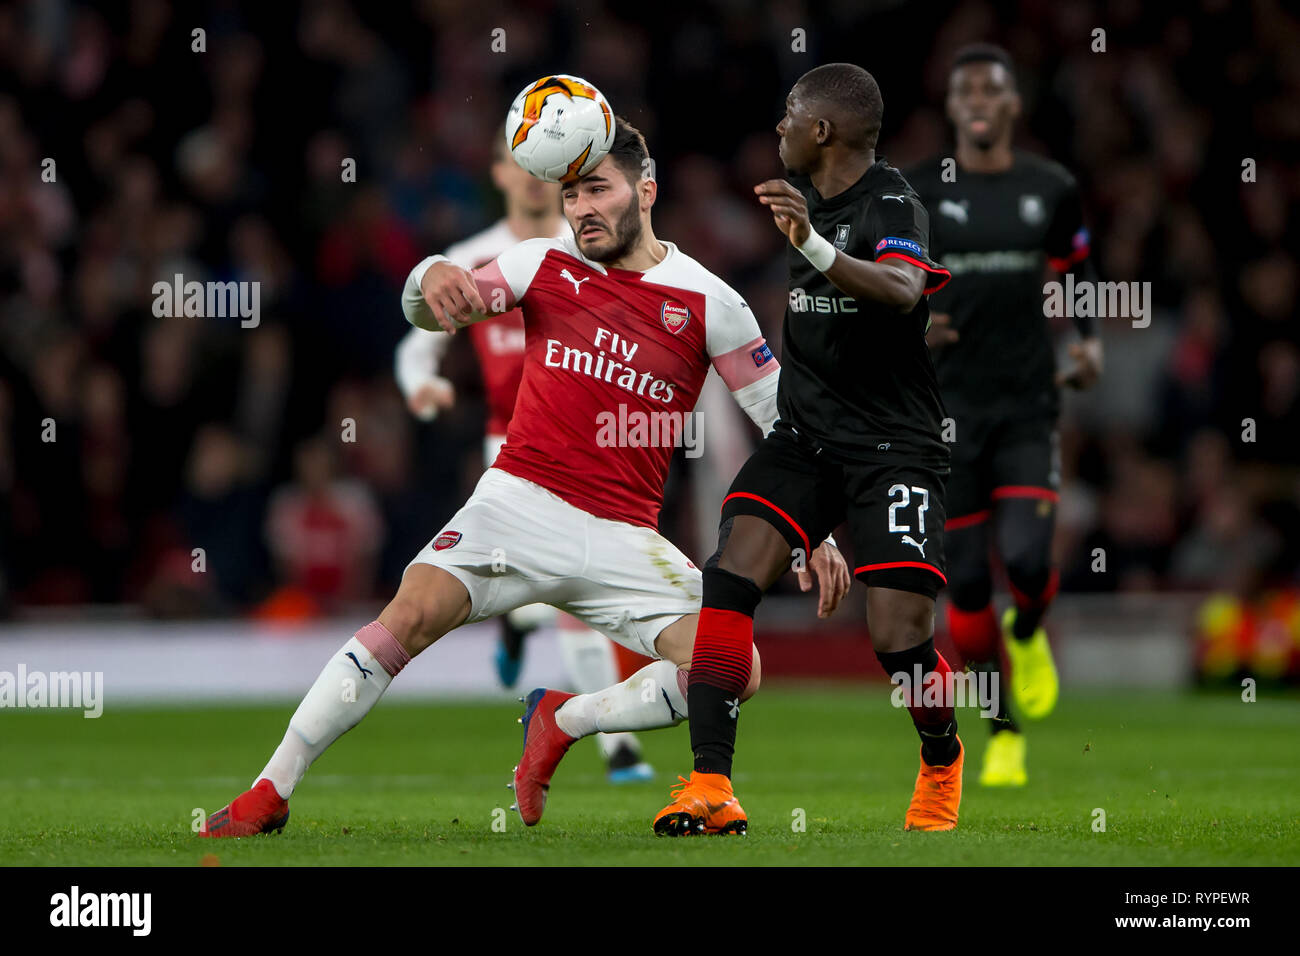 London, UK. 14th Mar, 2019. Sead Kolašinac of Arsenal and Hamary Traoré of Rennes during the UEFA Europa League Round of 32 second leg match between Arsenal and Rennes at the Emirates Stadium, London, England on 14 March 2019. Photo by Salvio Calabrese. Editorial use only, license required for commercial use. No use in betting, games or a single club/league/player publications. Credit: UK Sports Pics Ltd/Alamy Live News - Stock Image